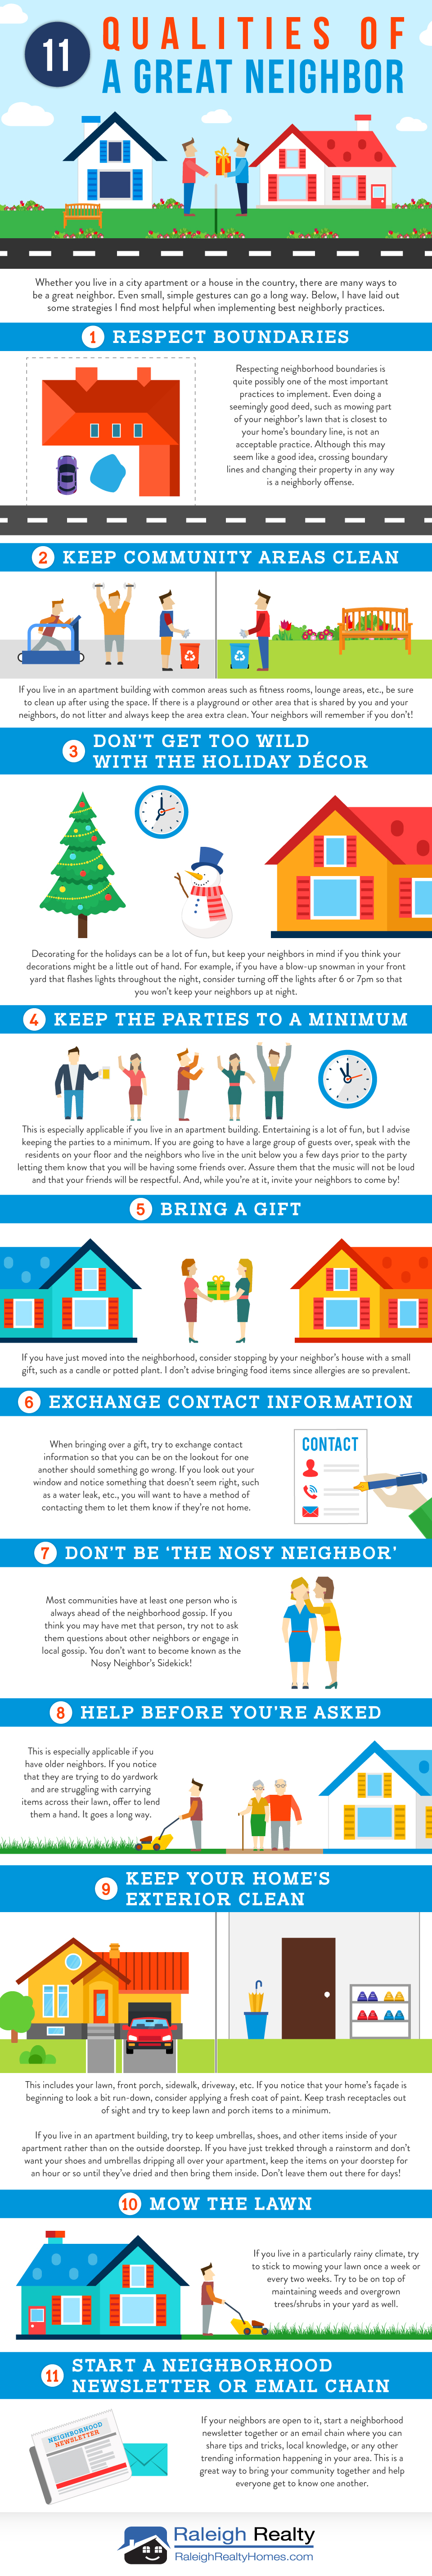 11 Qualities of a Great Neighbor - How to win over your neighborhood!